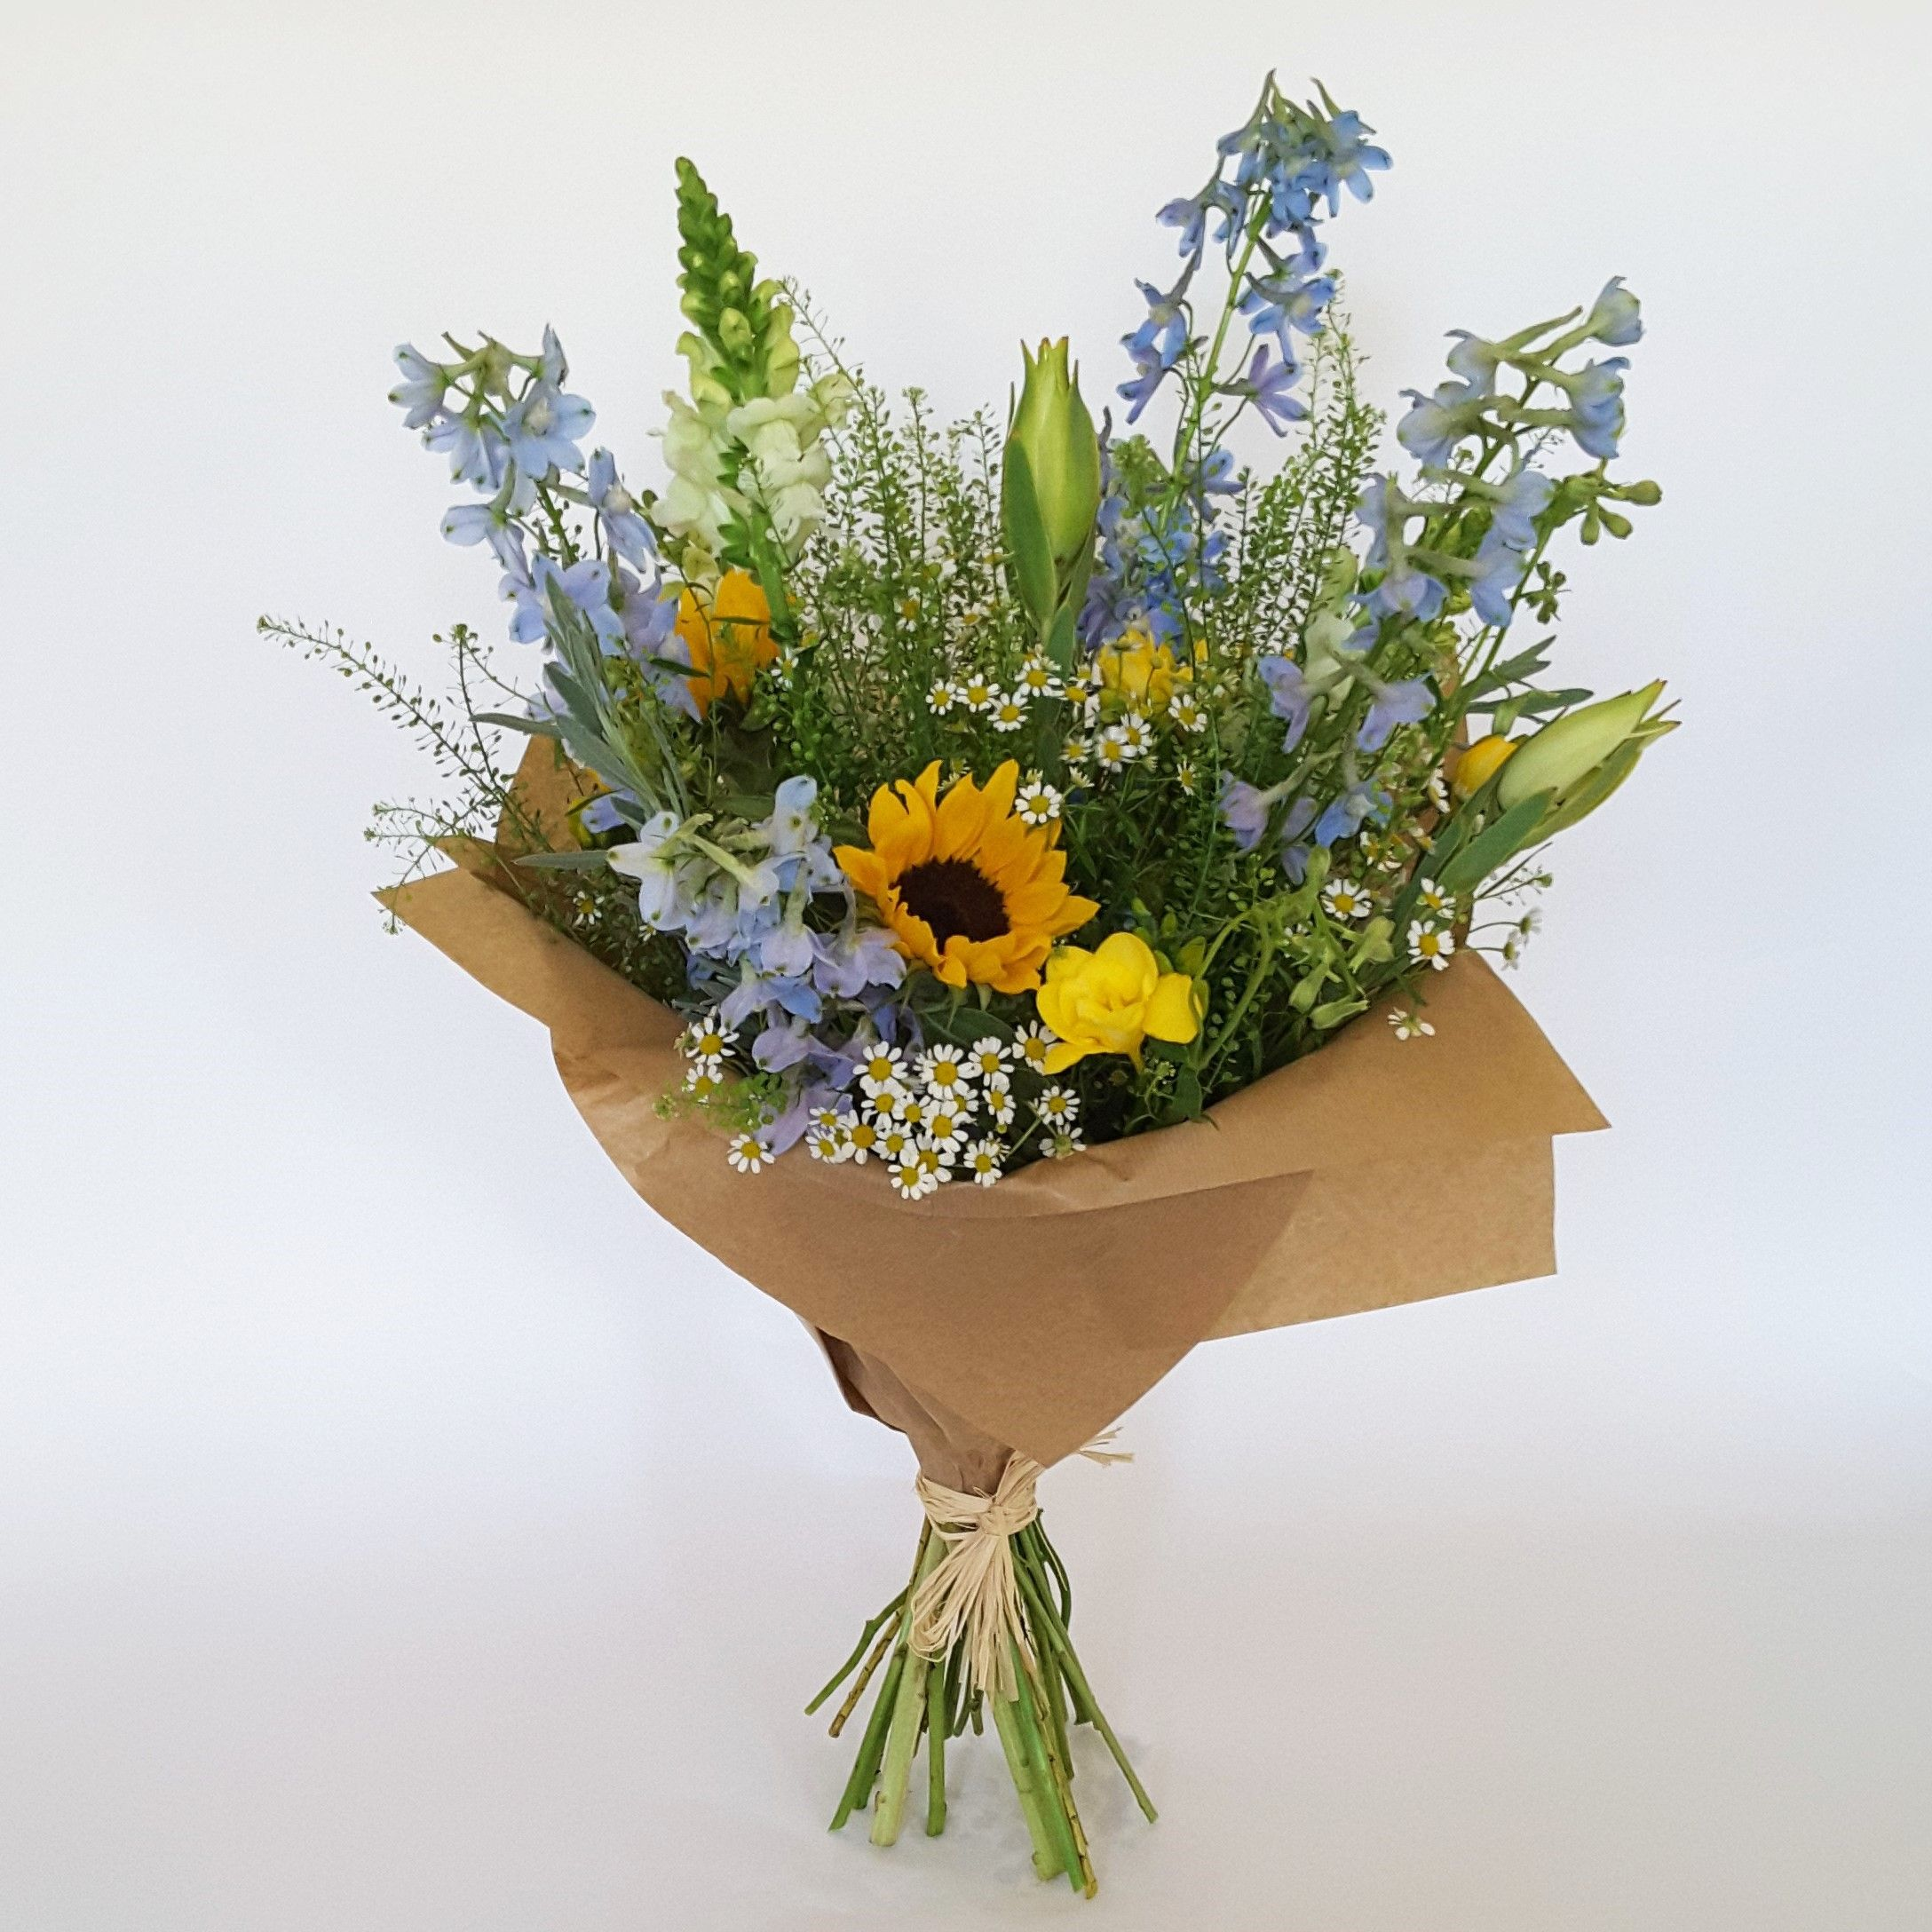 A Bright Handtied Bouquet Of Light Blue And Yellow Flowers